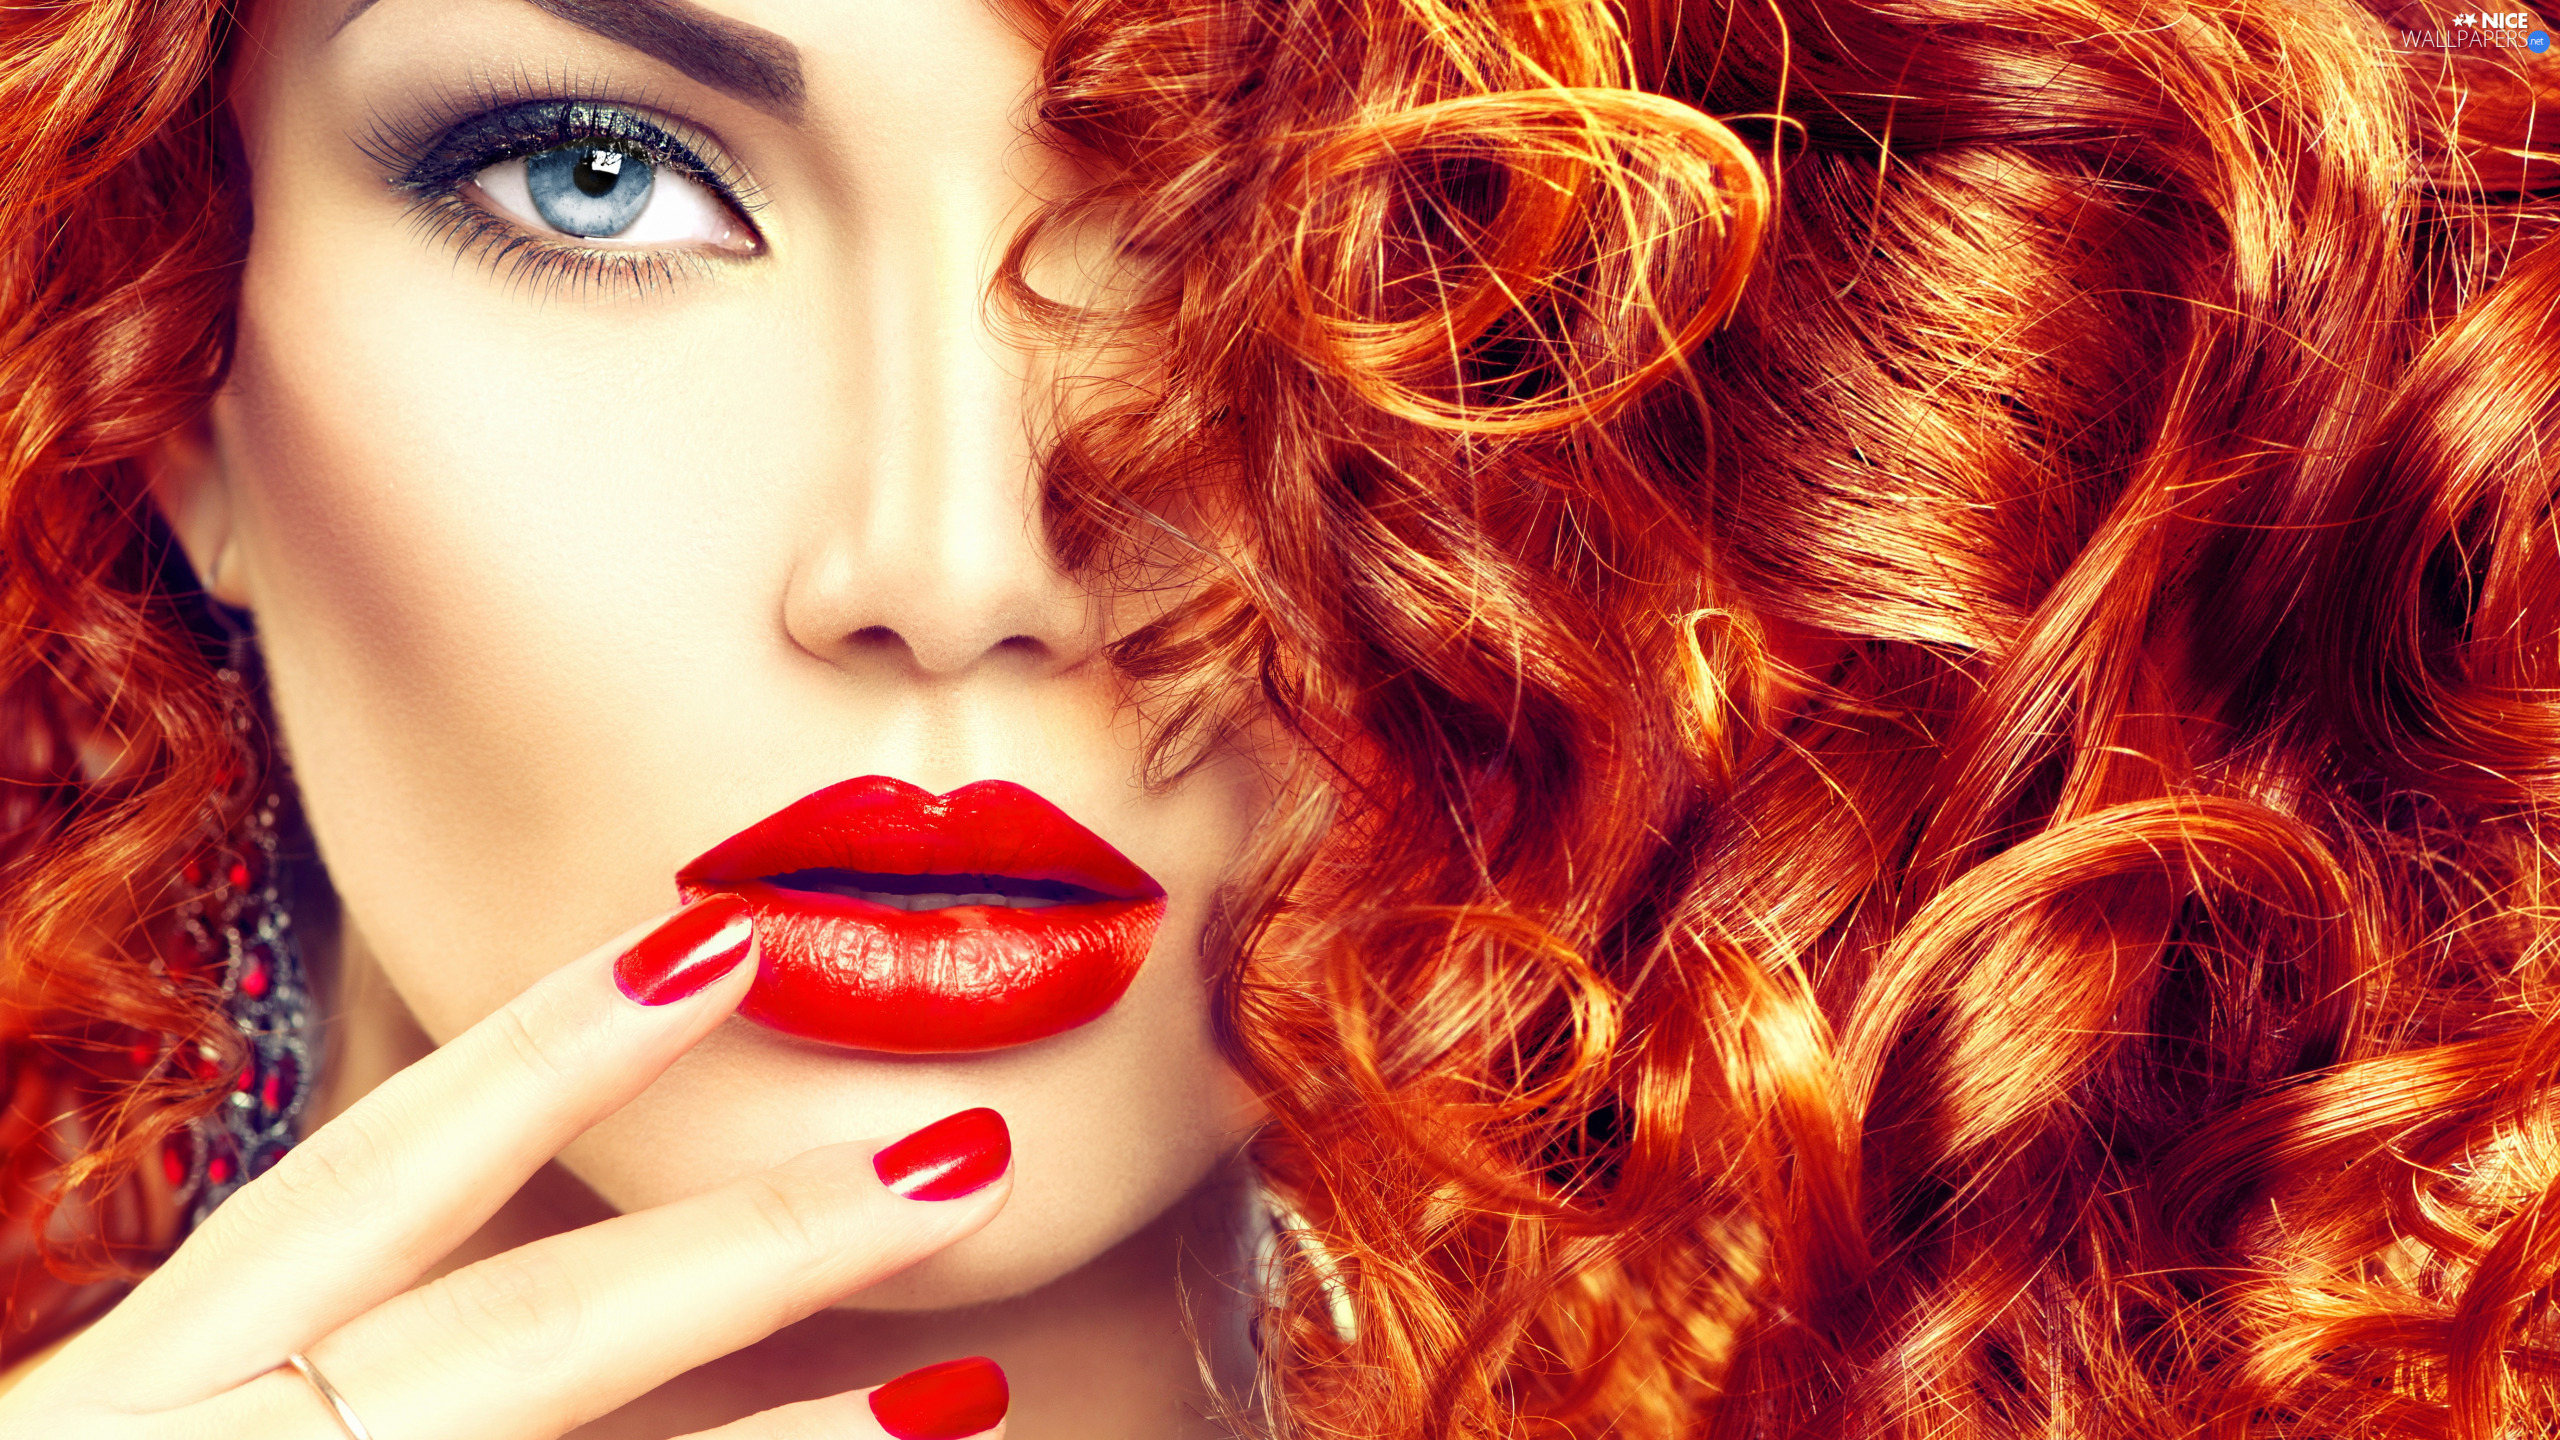 Hair, Women, make-up, Manicure, curls, red head